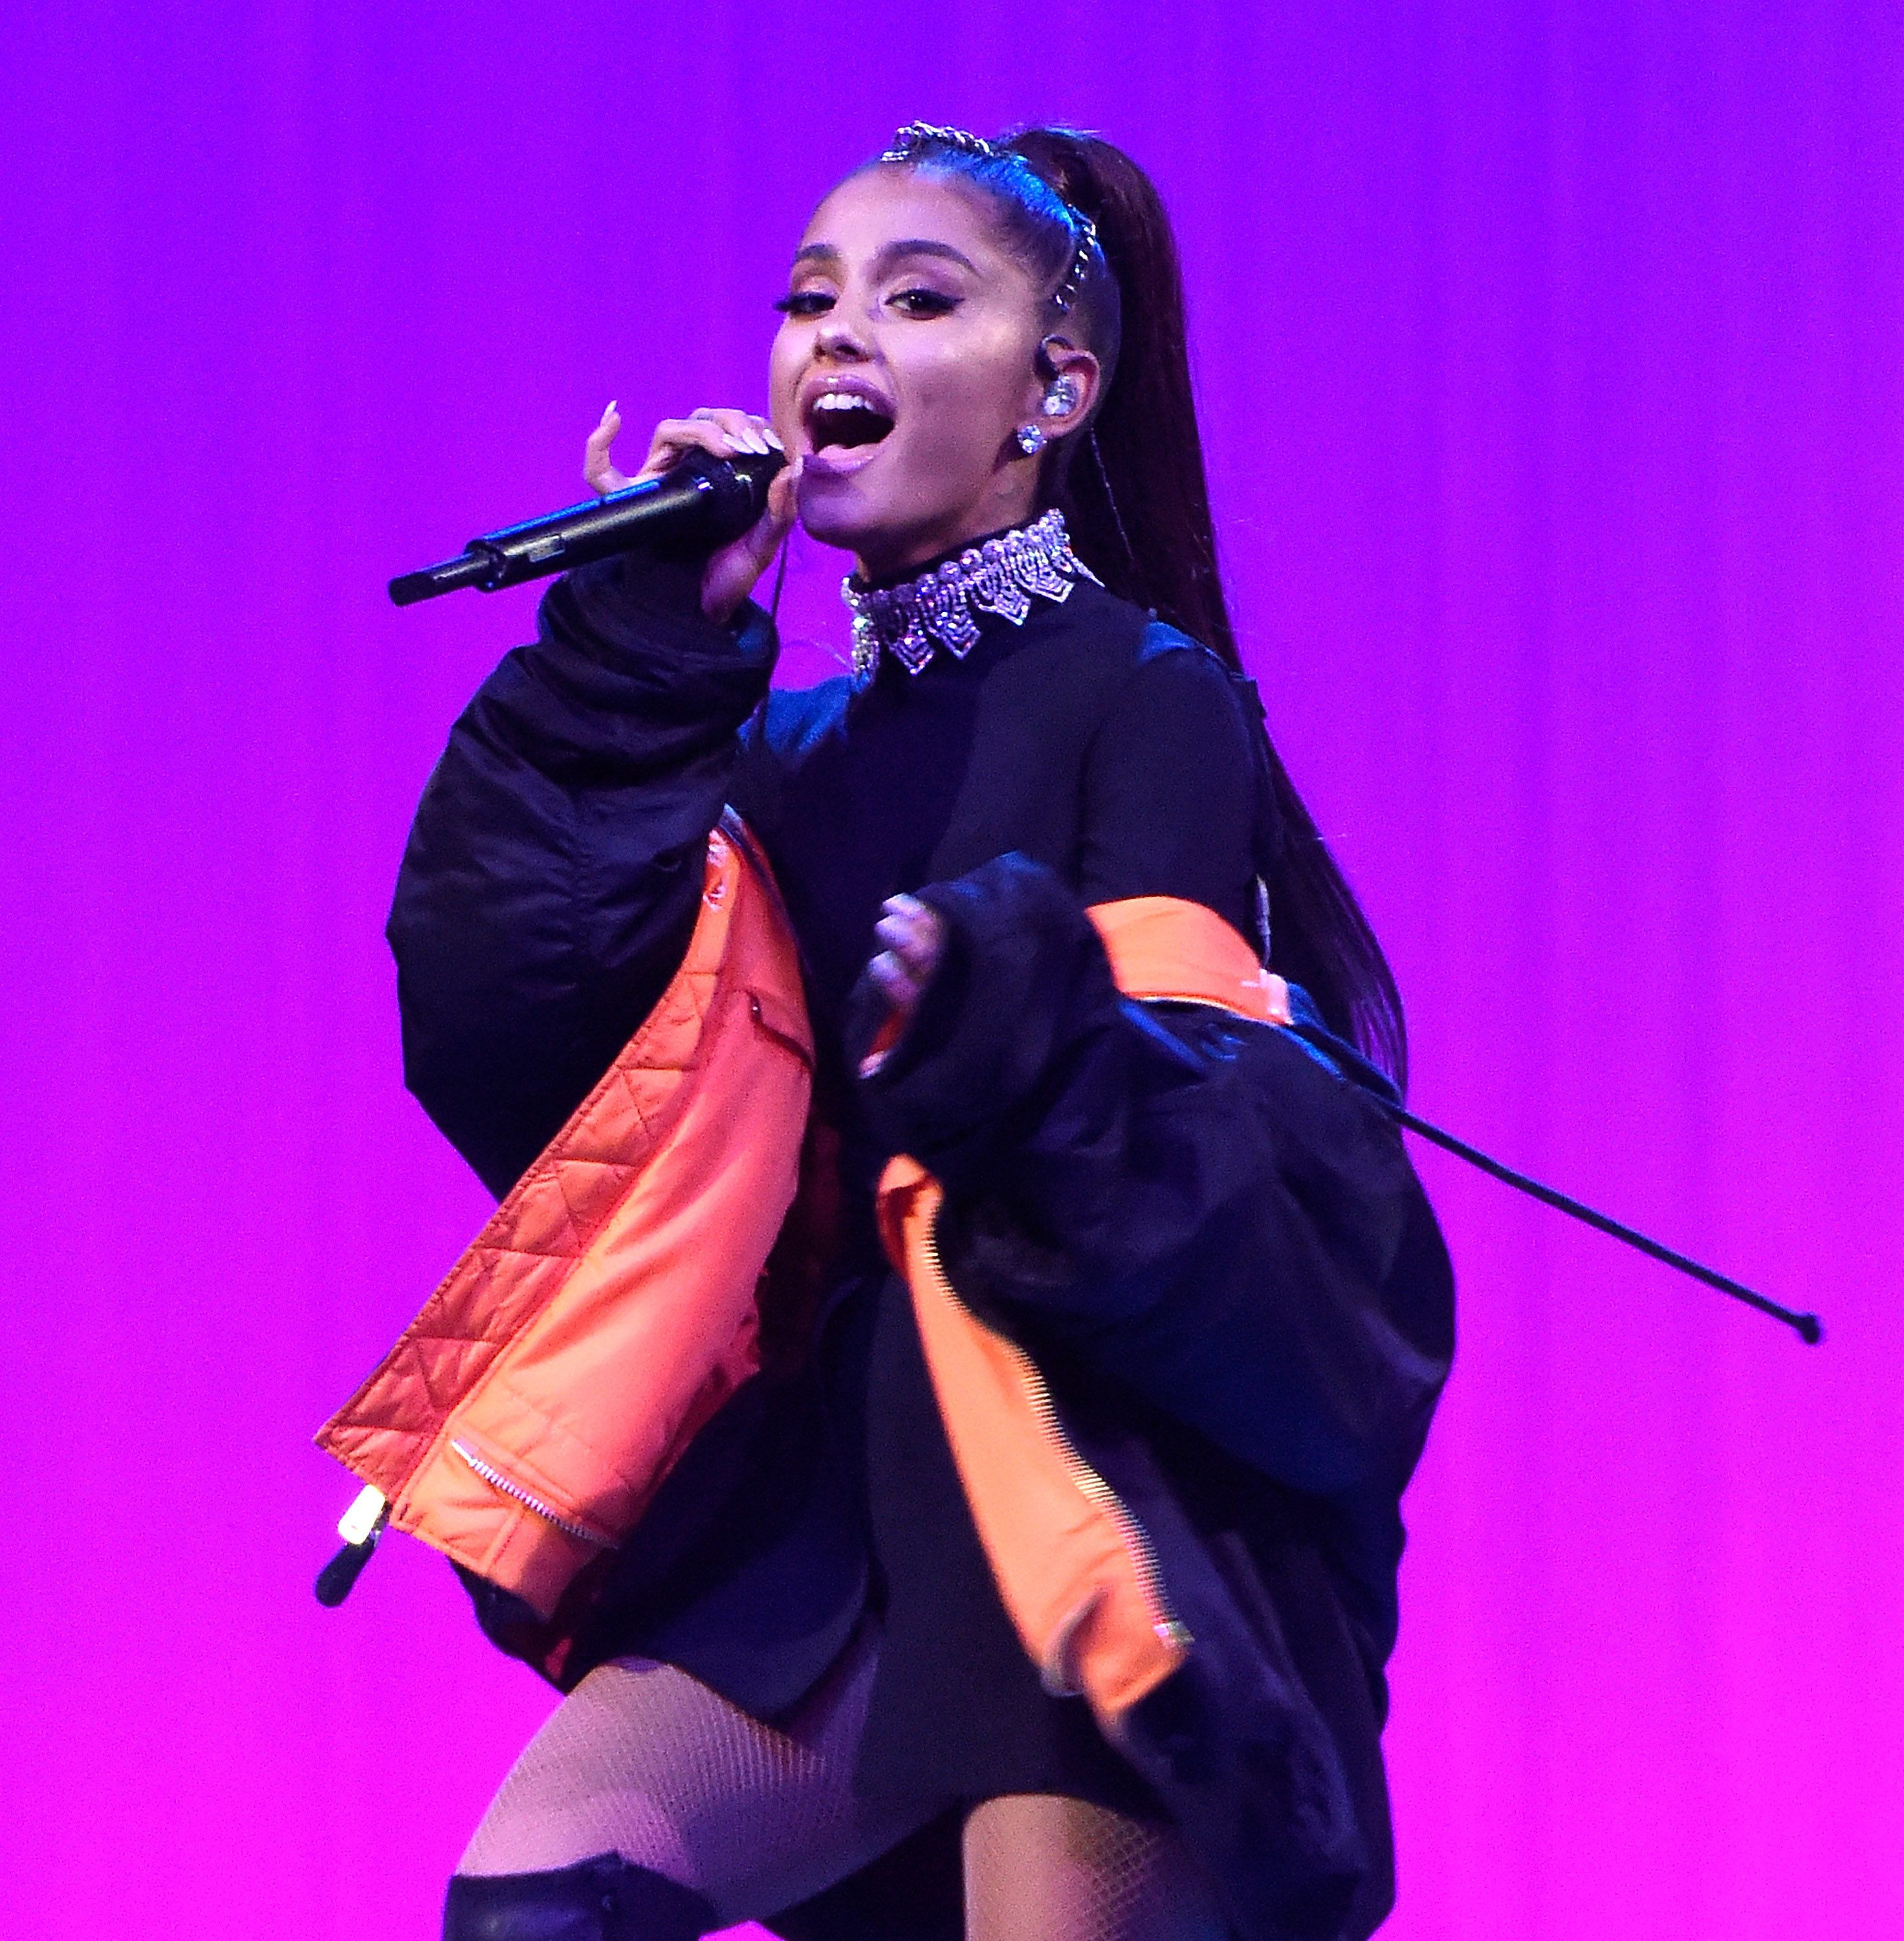 Here's How To Buy Tickets For The Ariana Grande Manchester Charity